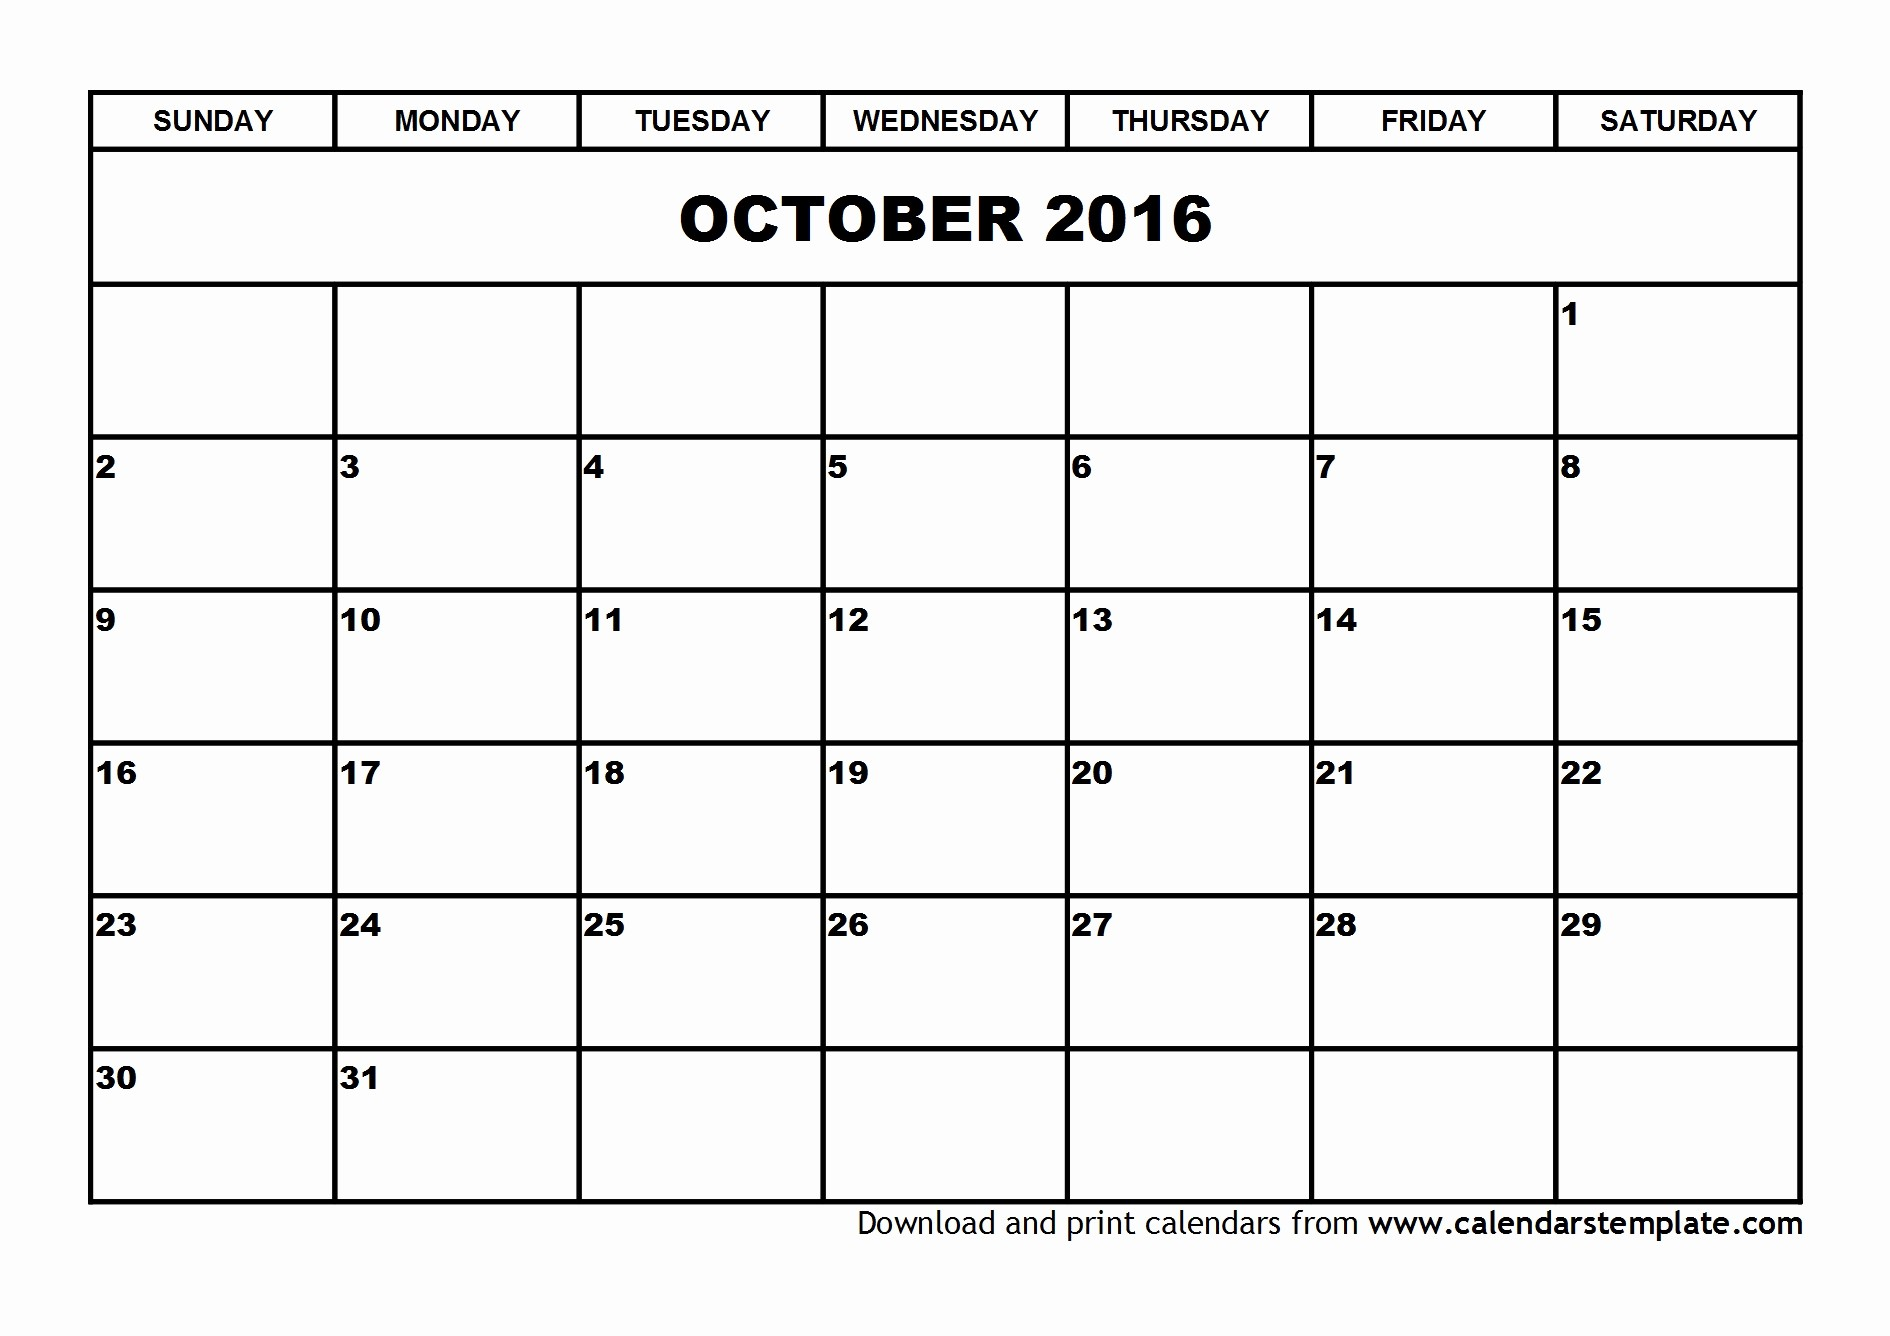 Free Printable Calendar 2016 Templates Lovely October 2016 Calendar Template